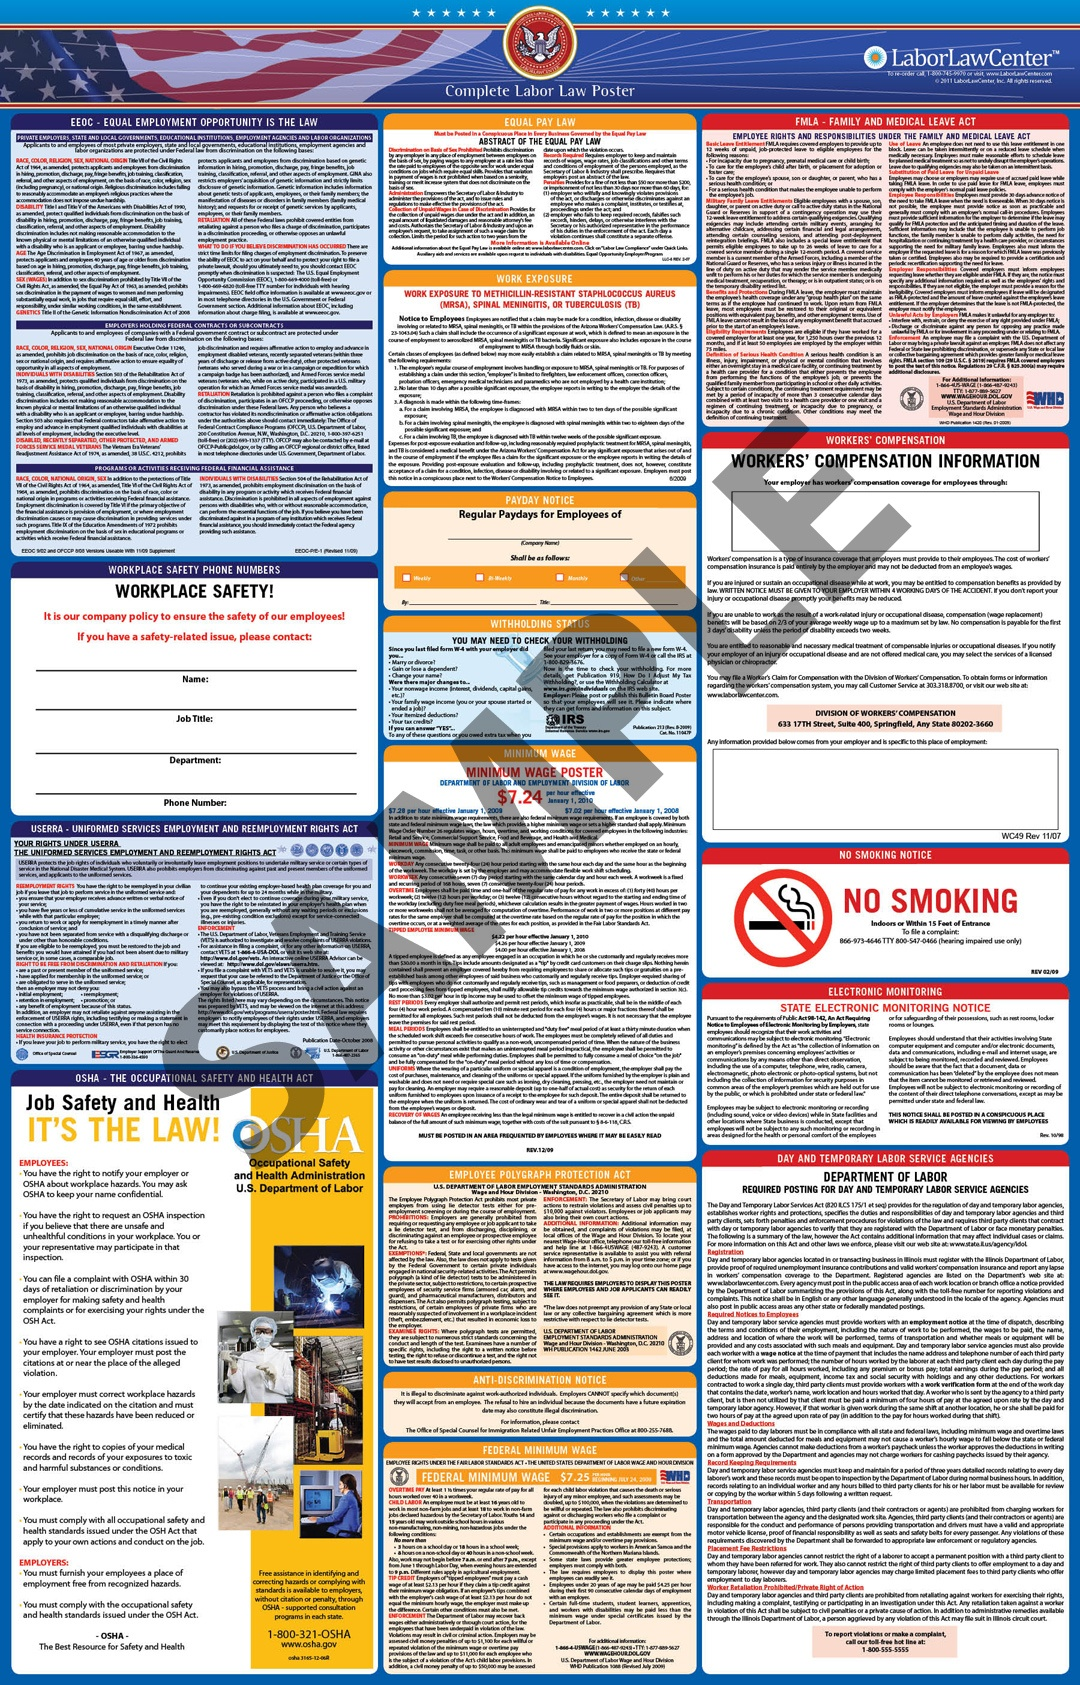 Faqs On Labor Law Posters | Laborlawcenter - Free Printable Osha Posters